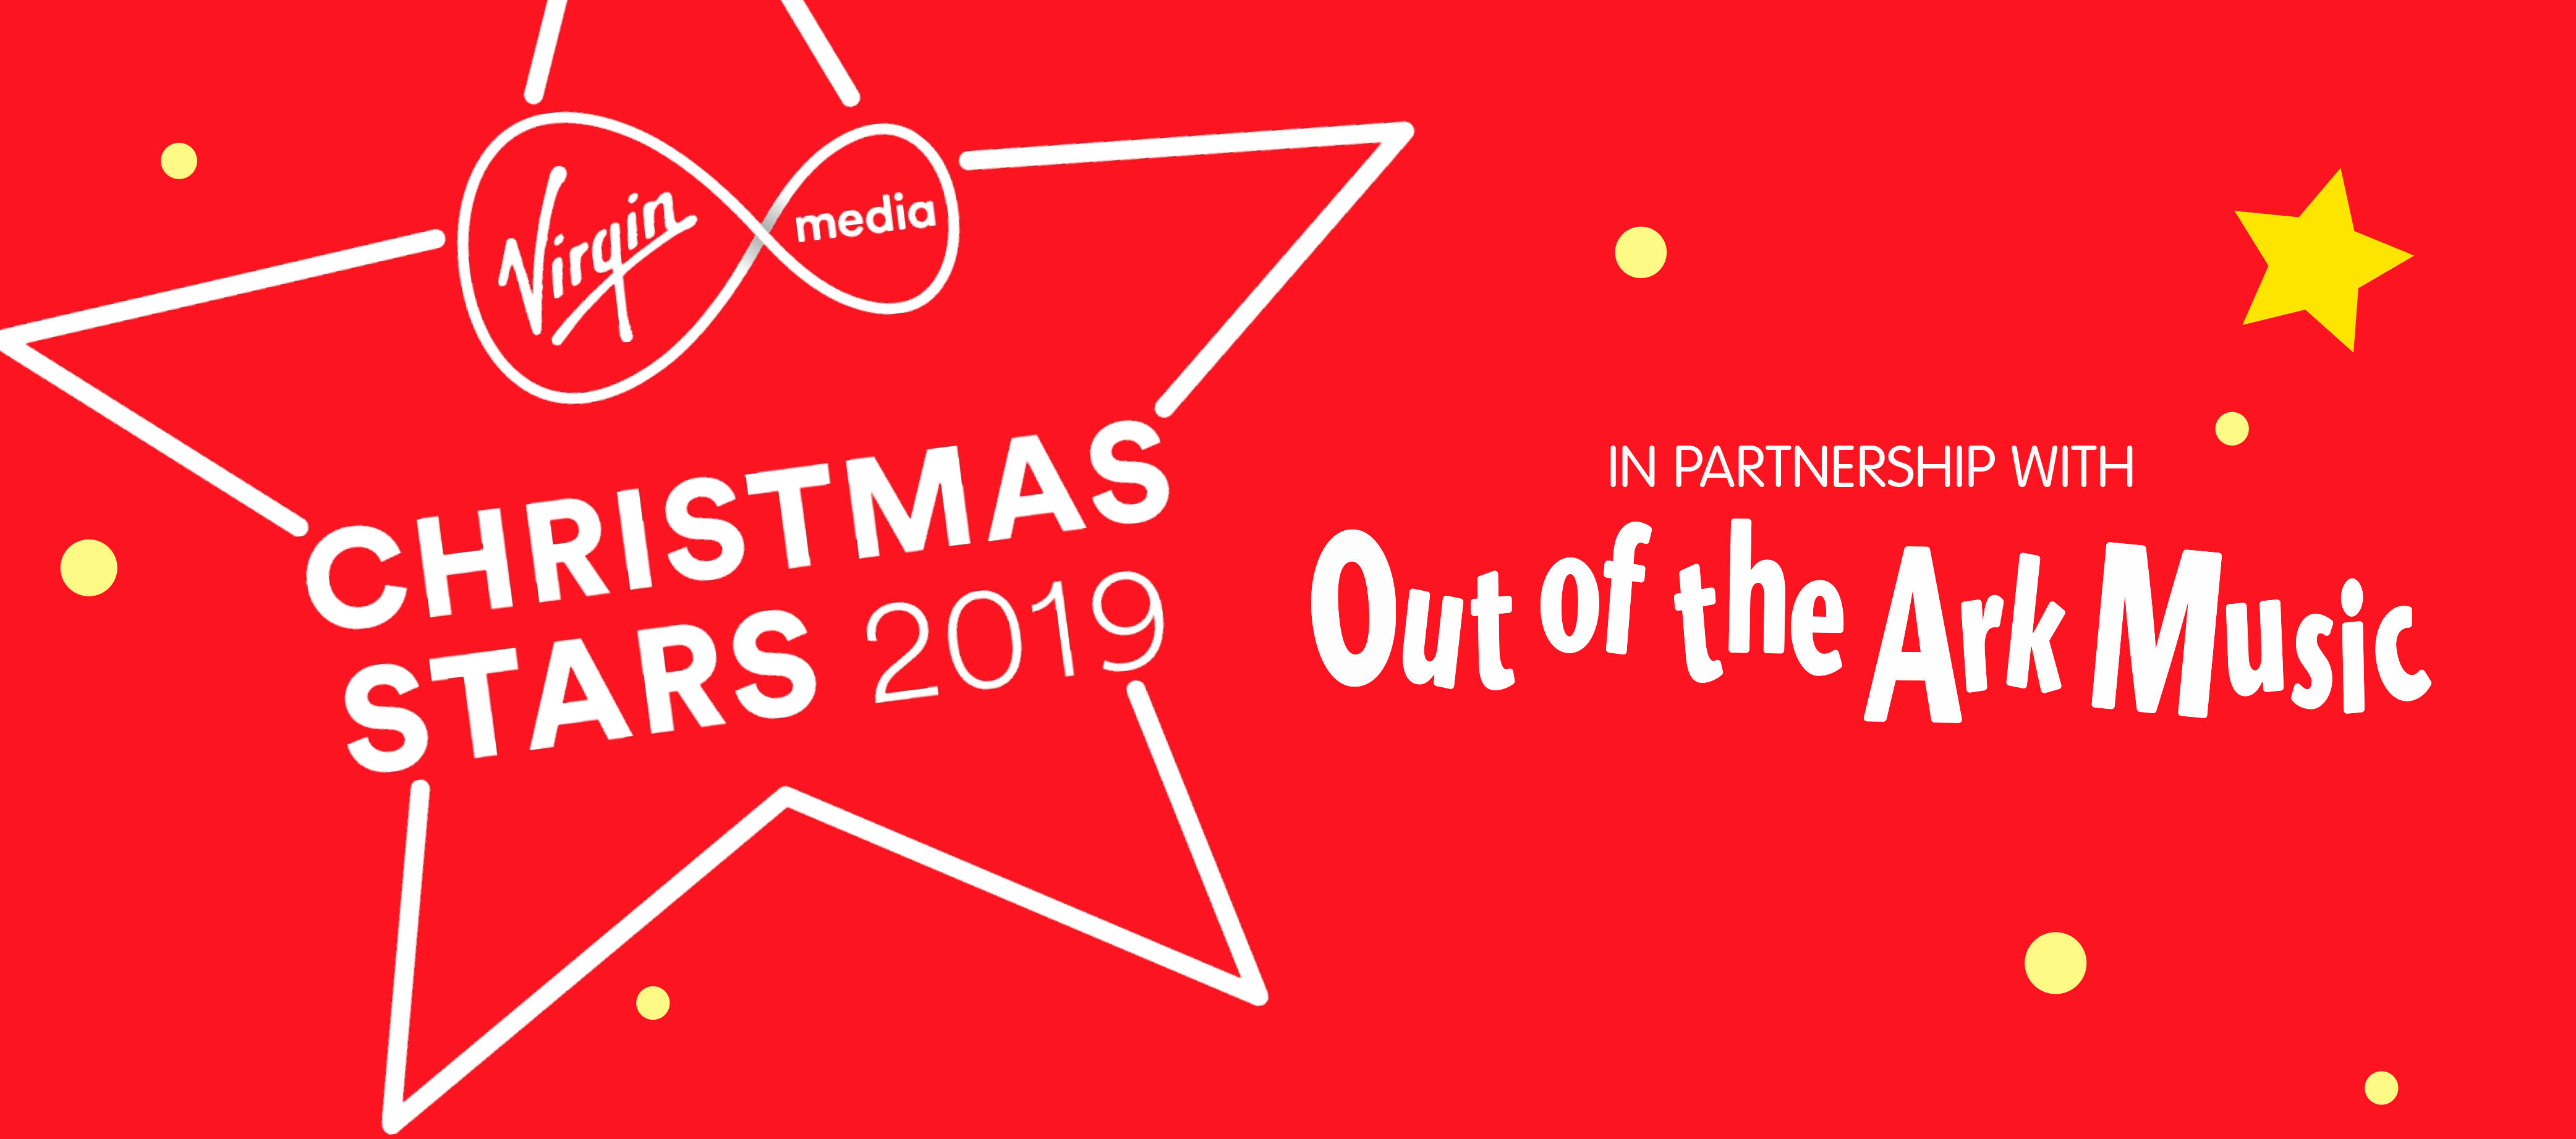 Virgin Media Competition 2019